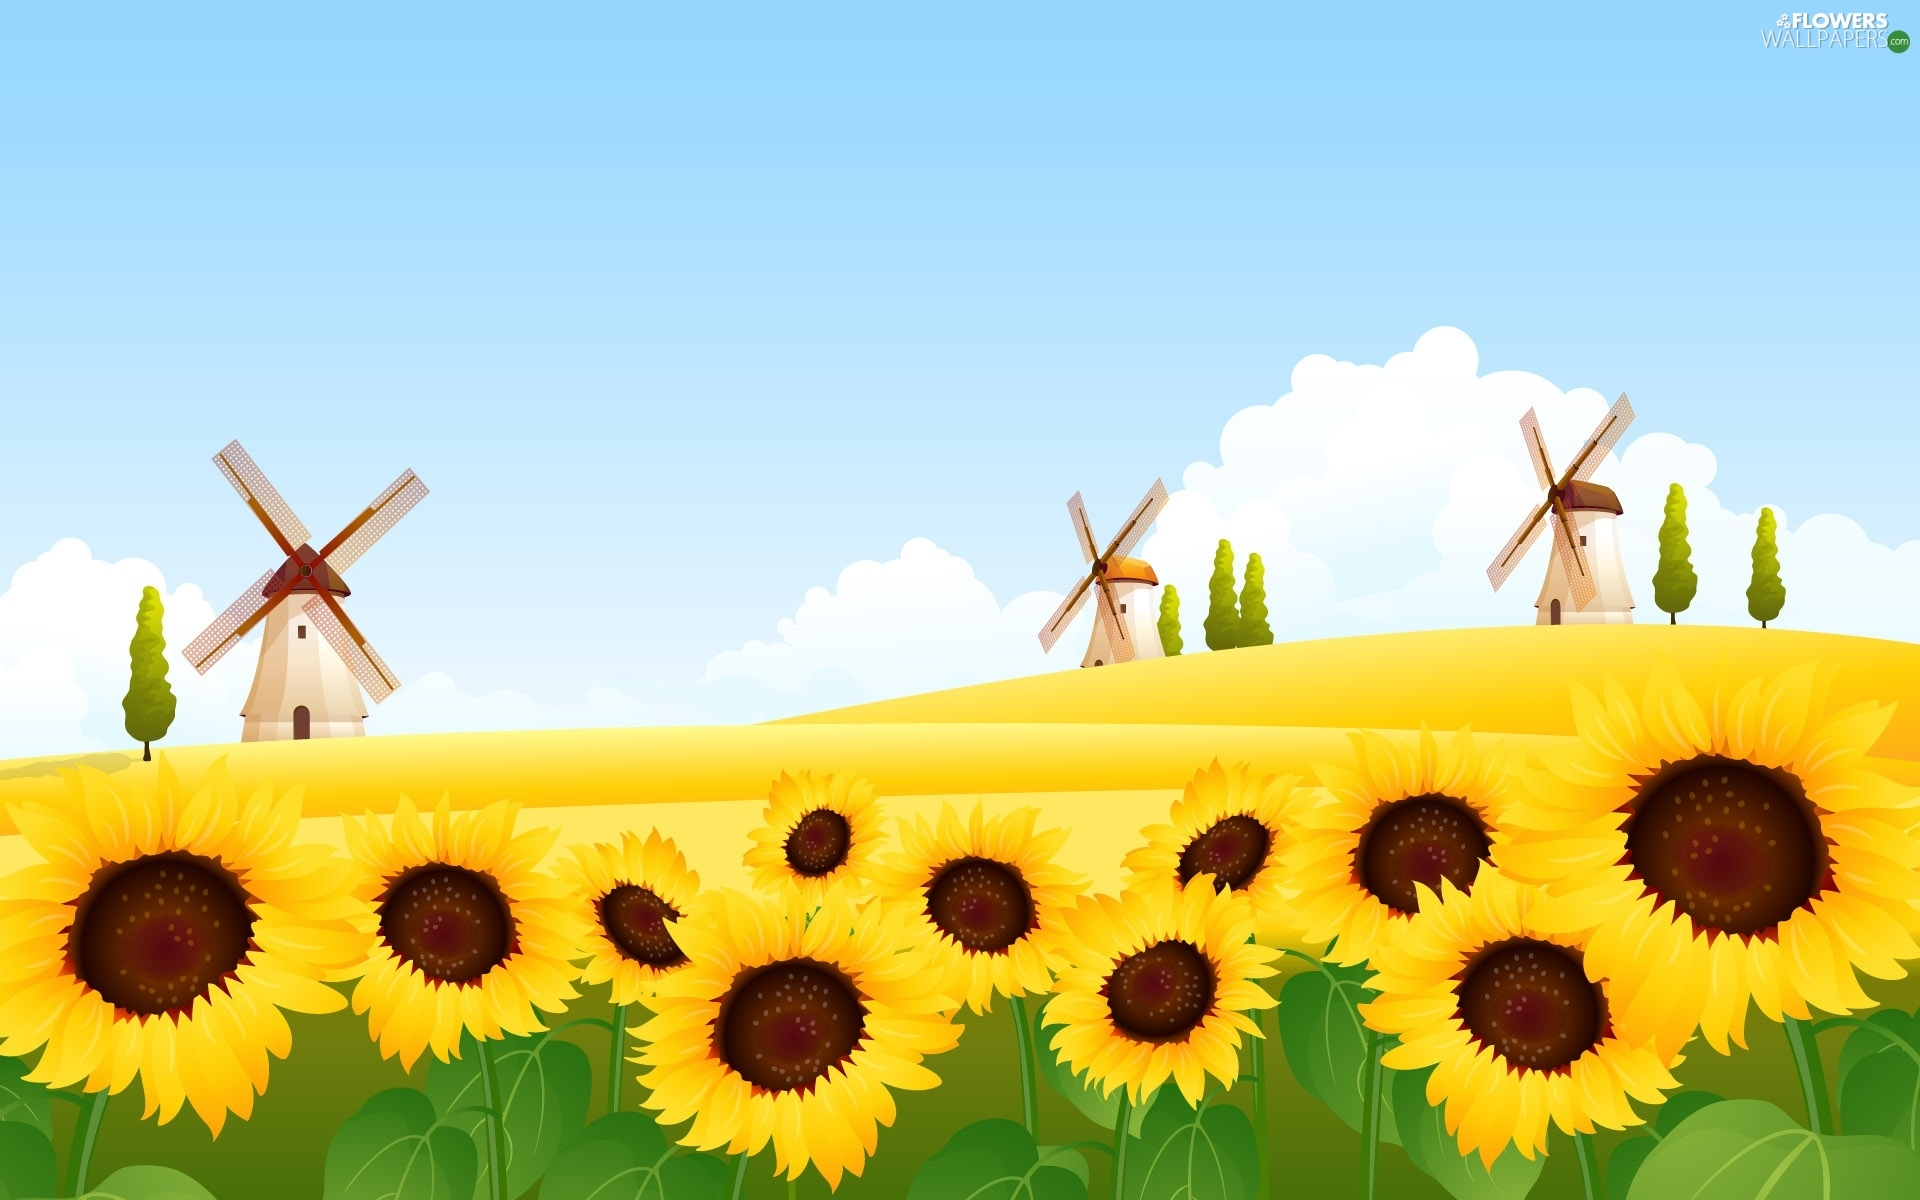 Landscape, Nice Sunflowers, Windmills, Field